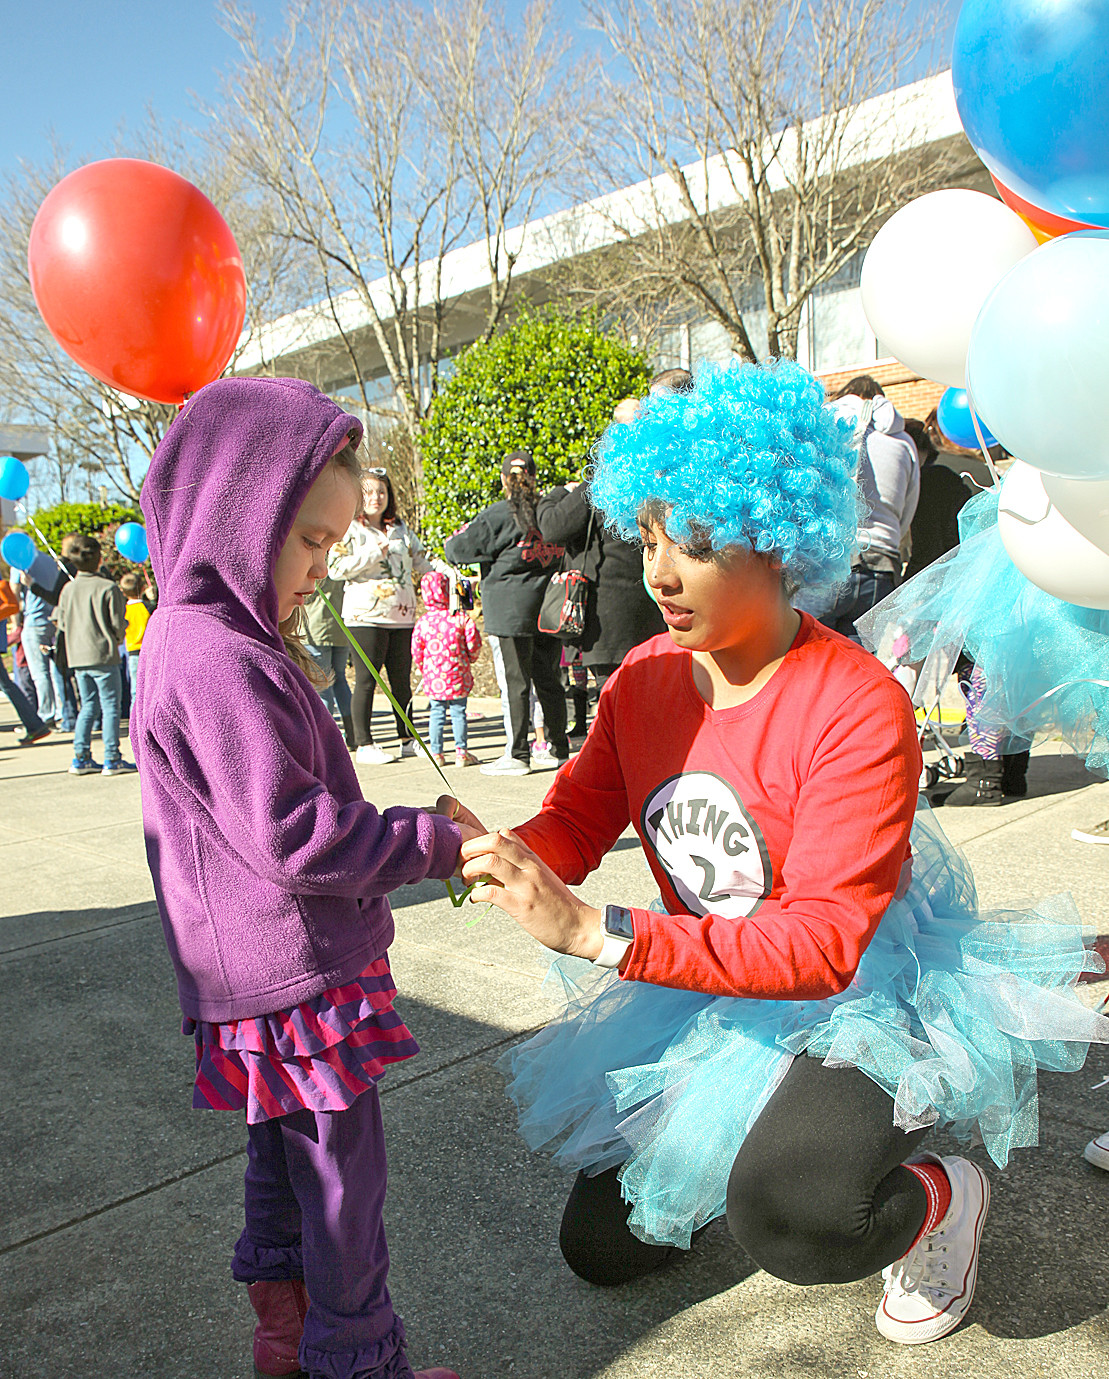 MAKINLEY WEISS, left, receives a red balloon from Isabel Tellez, dressed as Thing #2, while waiting in line to enter the CSCC Dr. Seuss Birthday Celebration inside the school library.